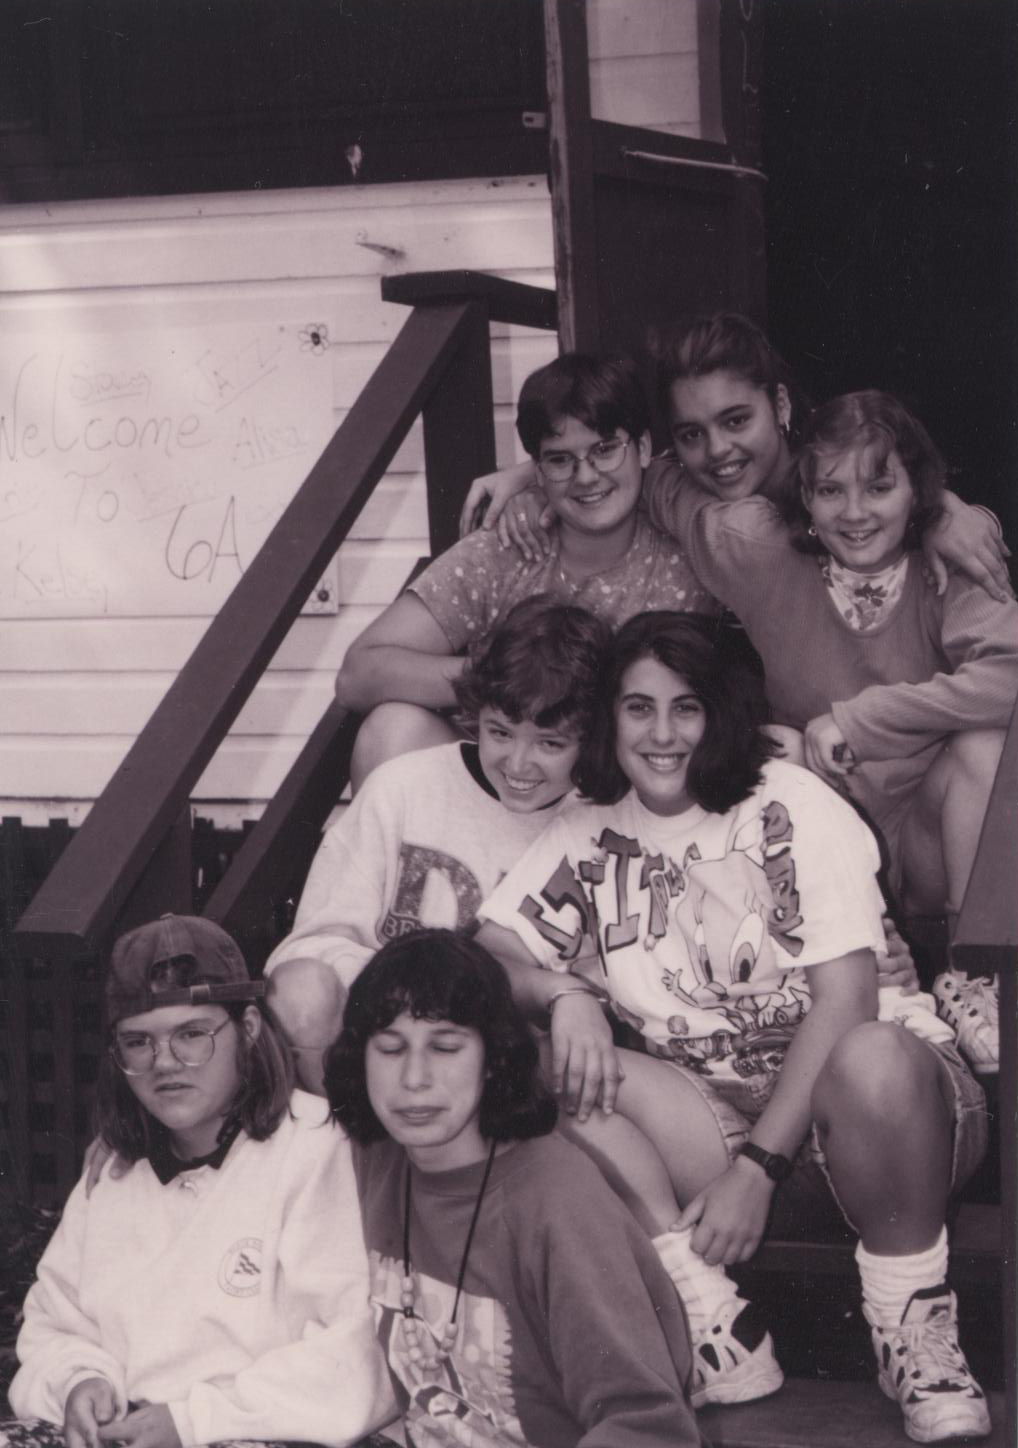 A group of campers sitting on the stairs together smiling.